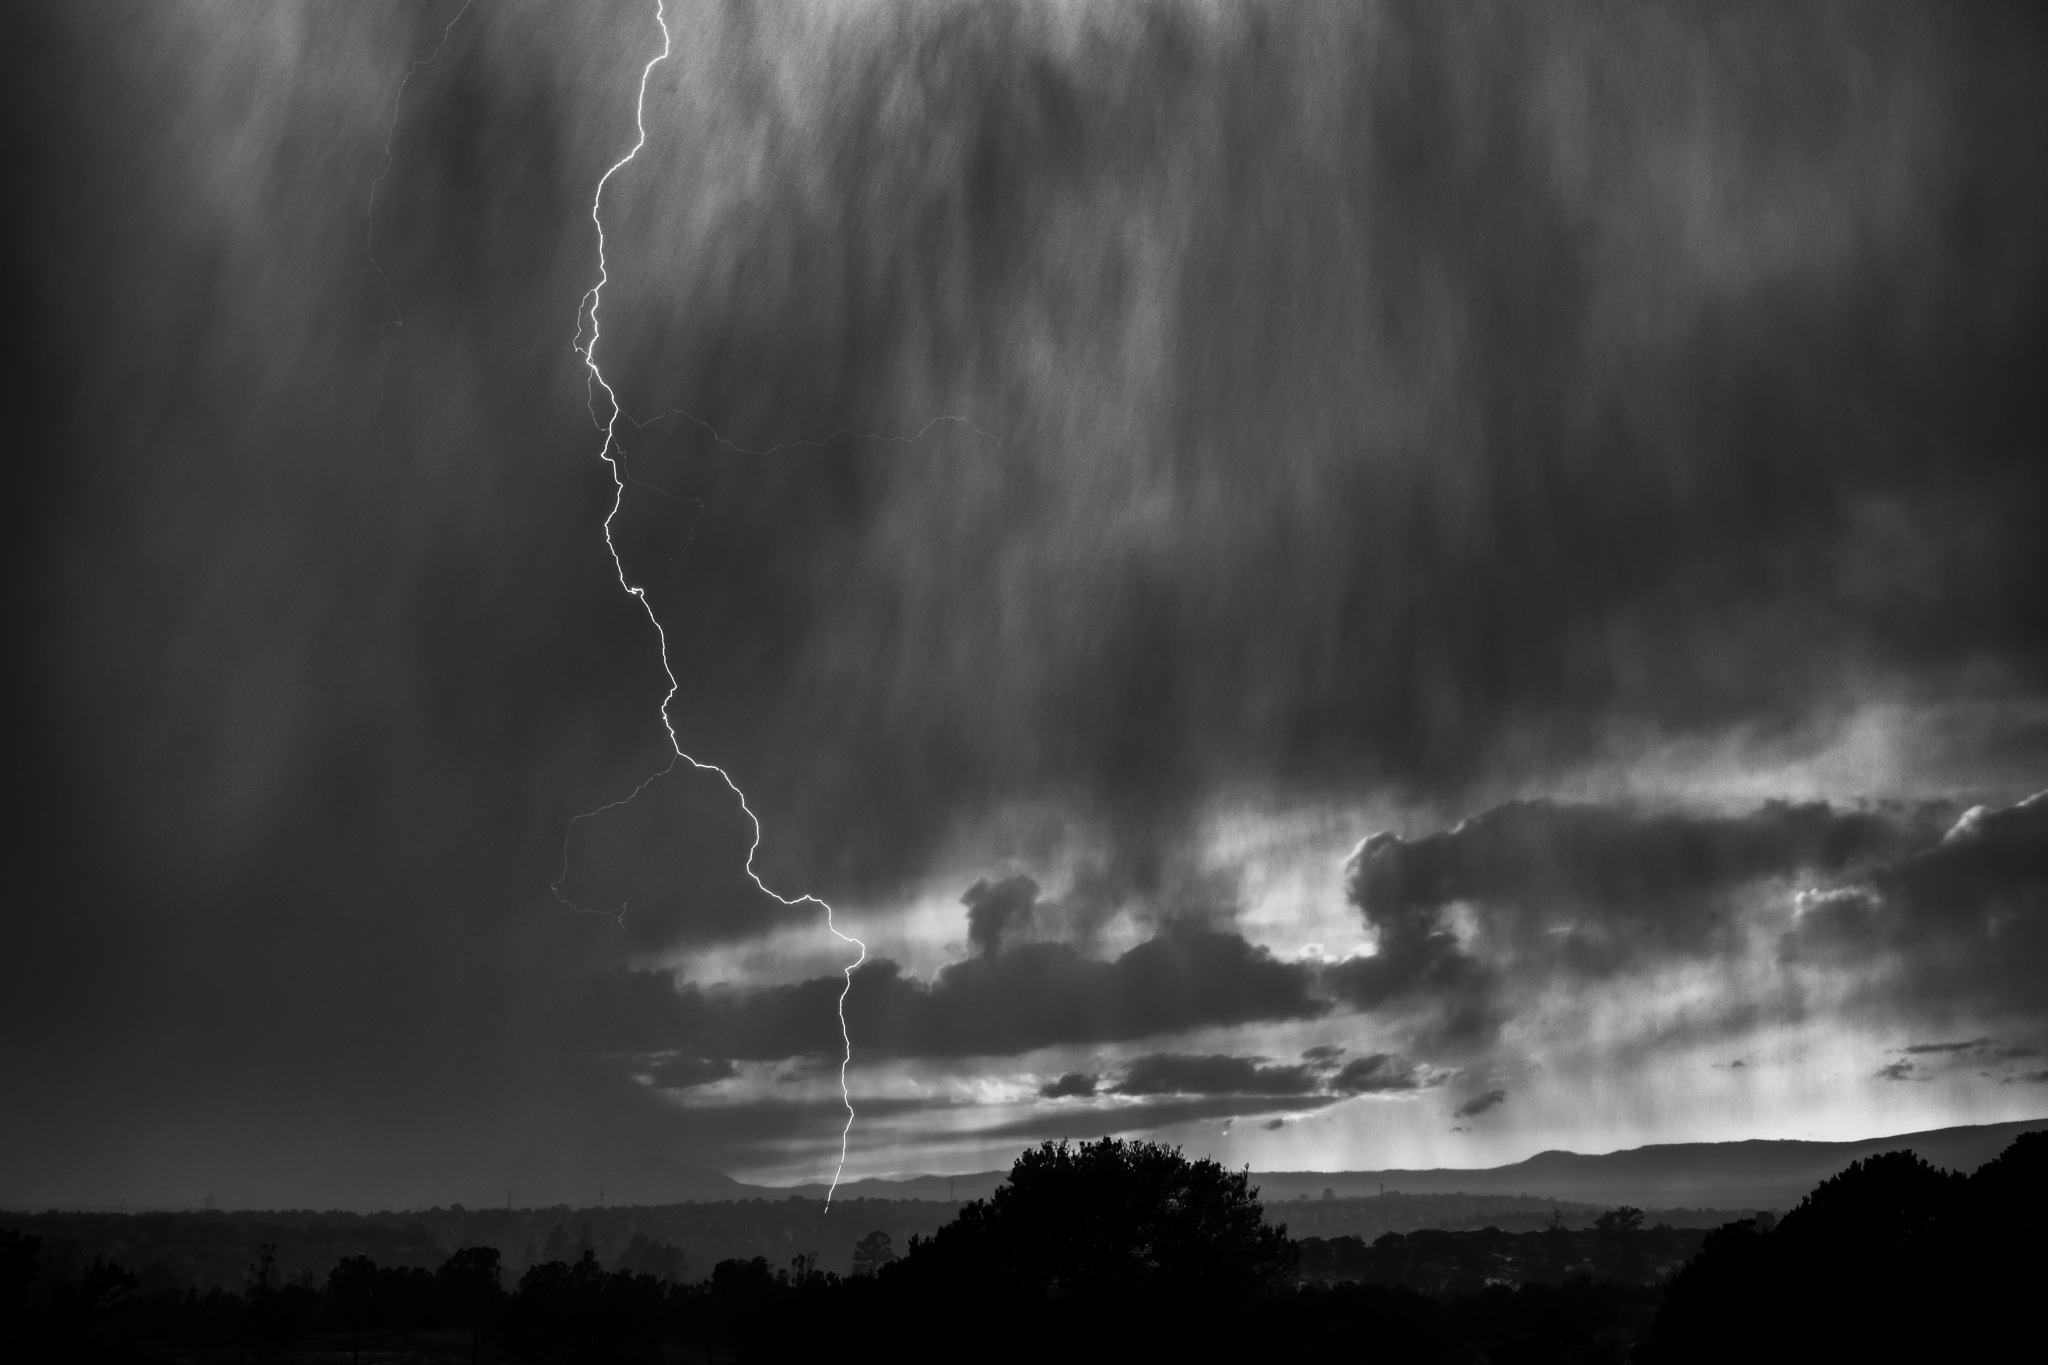 Thundersnow by Stephen Lee